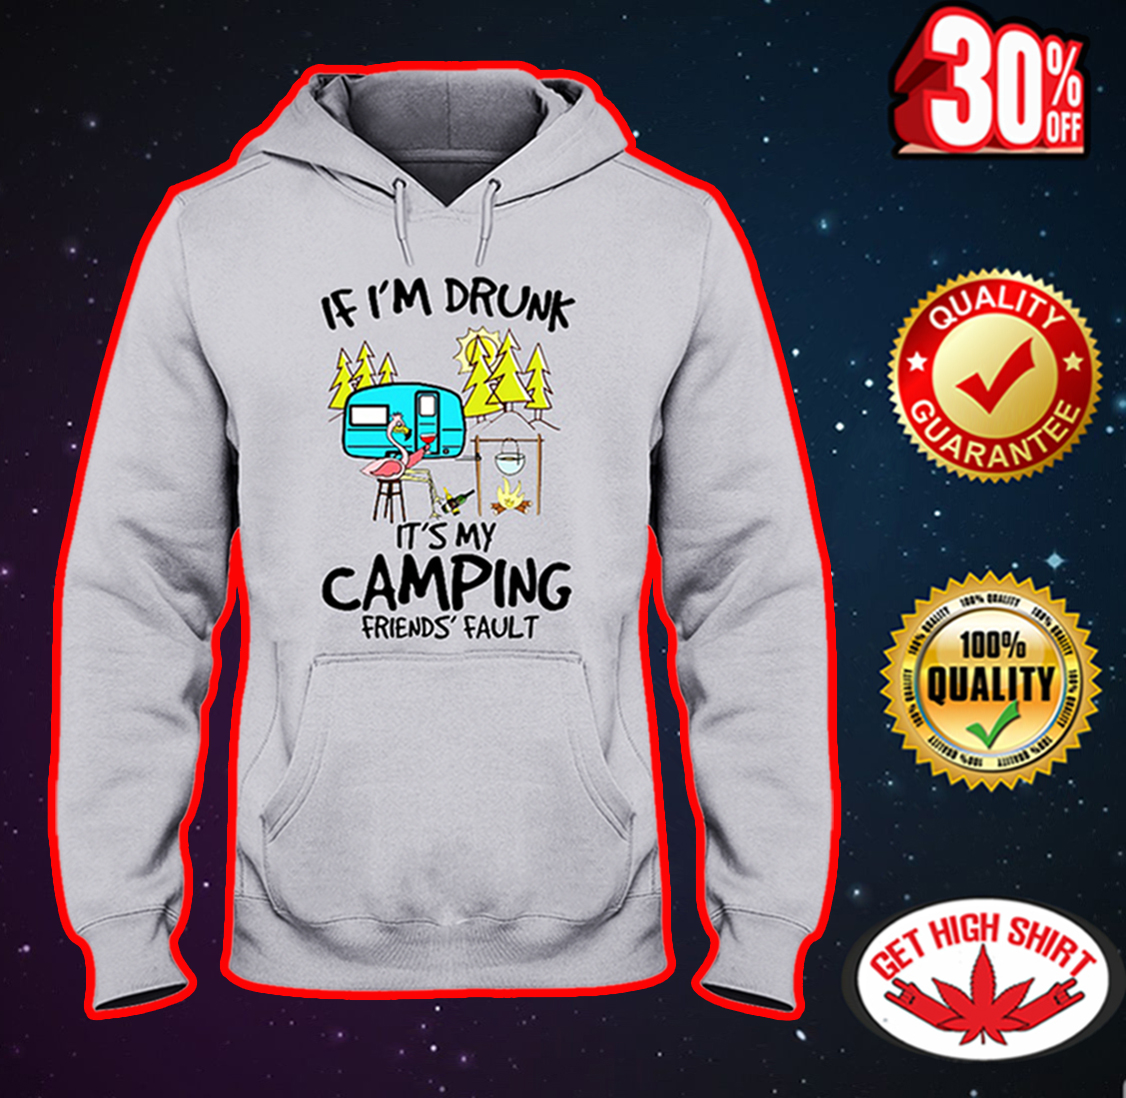 If I'm drunk it's my camping friends' fault Flamingo hooded sweatshirt